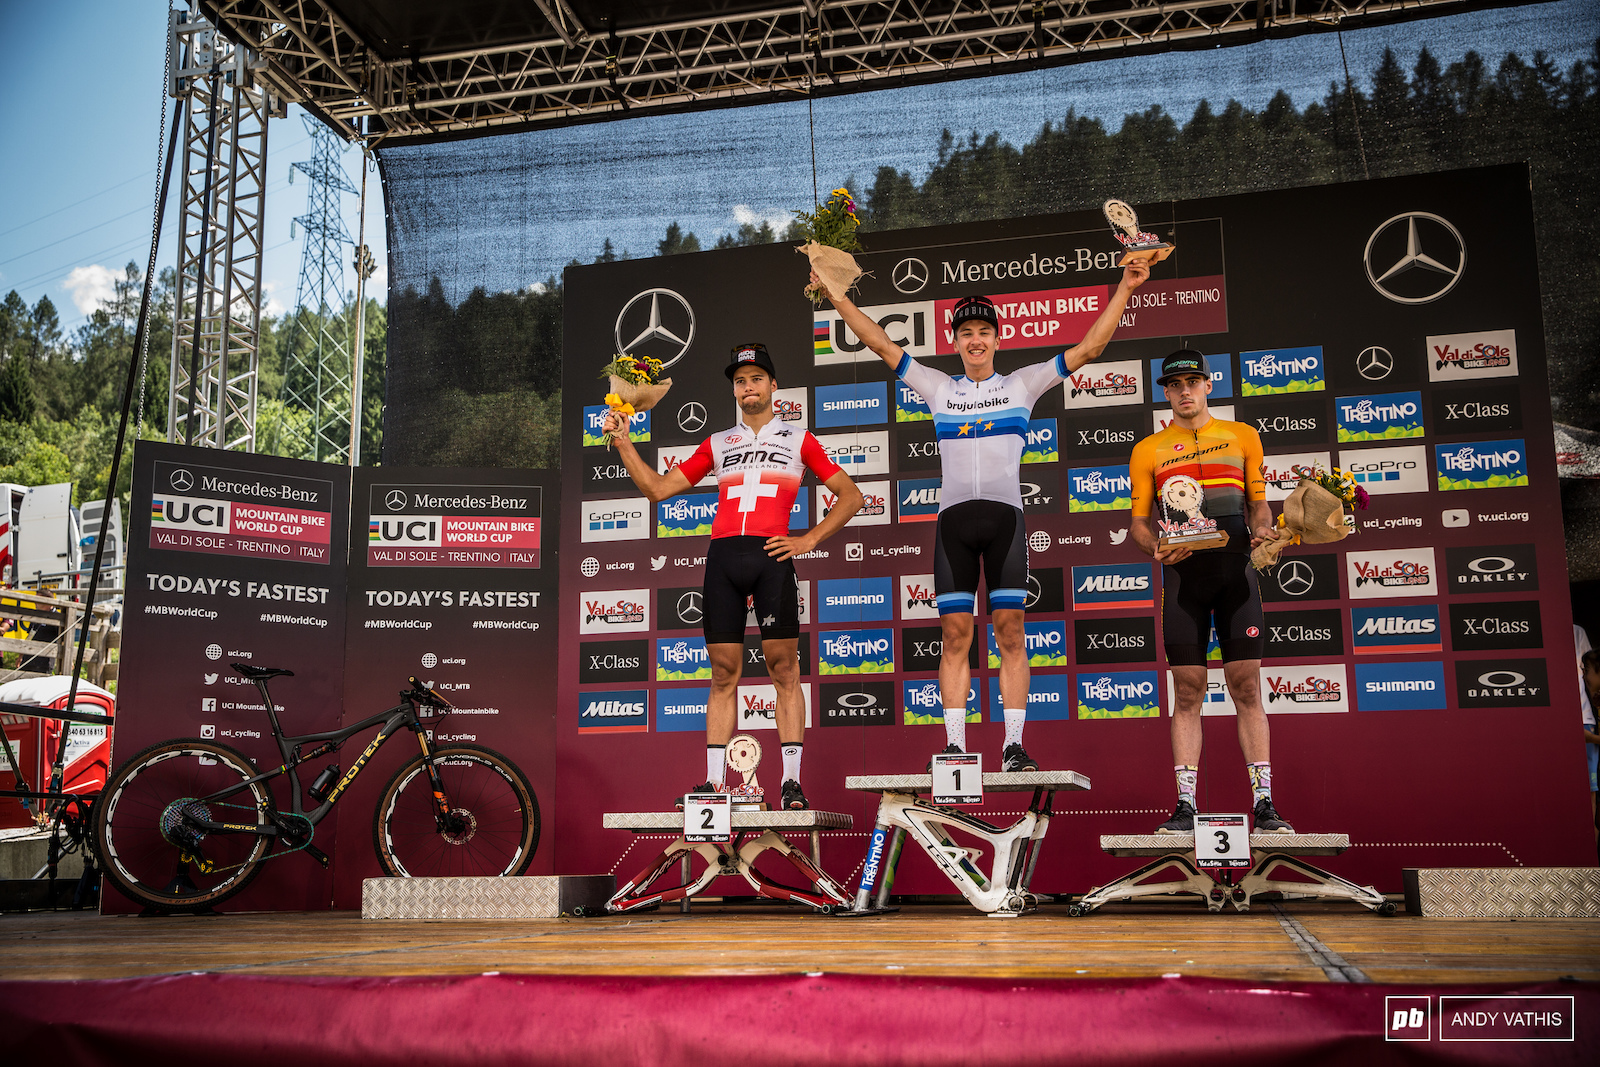 Vlad Dascalu Filipo Colombo and Jofre Cullell Estape close out the U23 Men s podium.